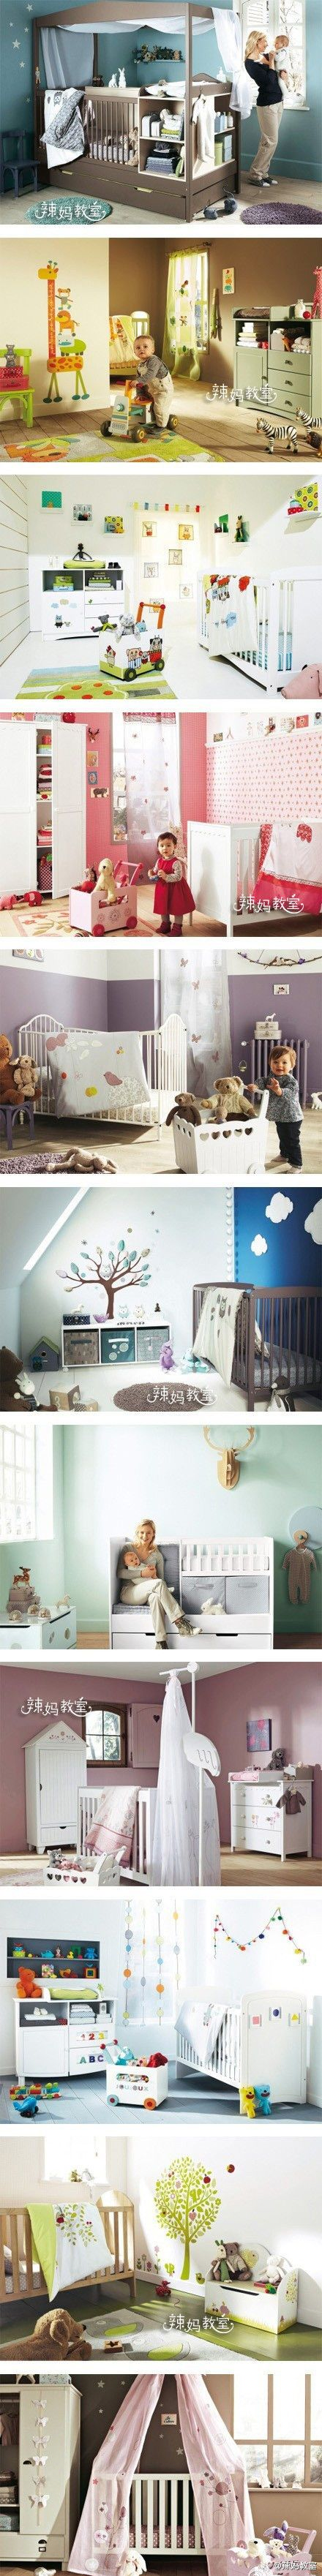 best baby shower images on pinterest pregnancy babies stuff